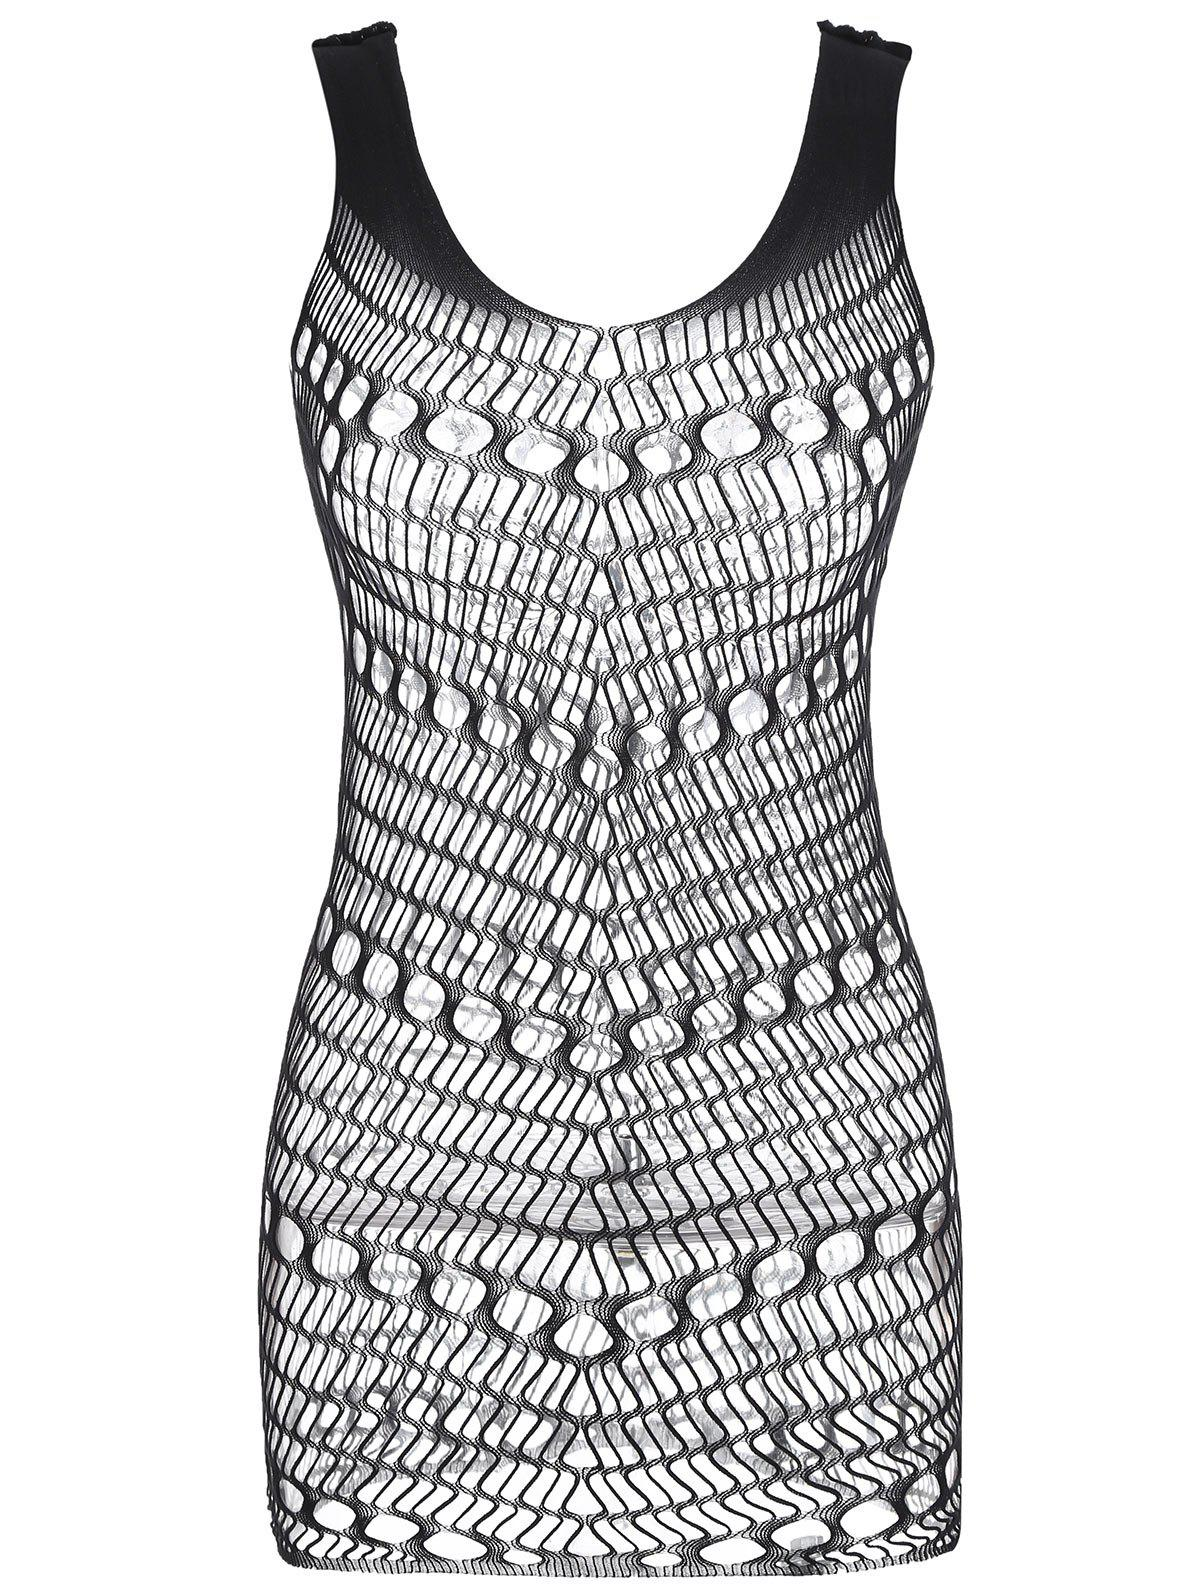 Hot Openwork Short Lingerie Dress